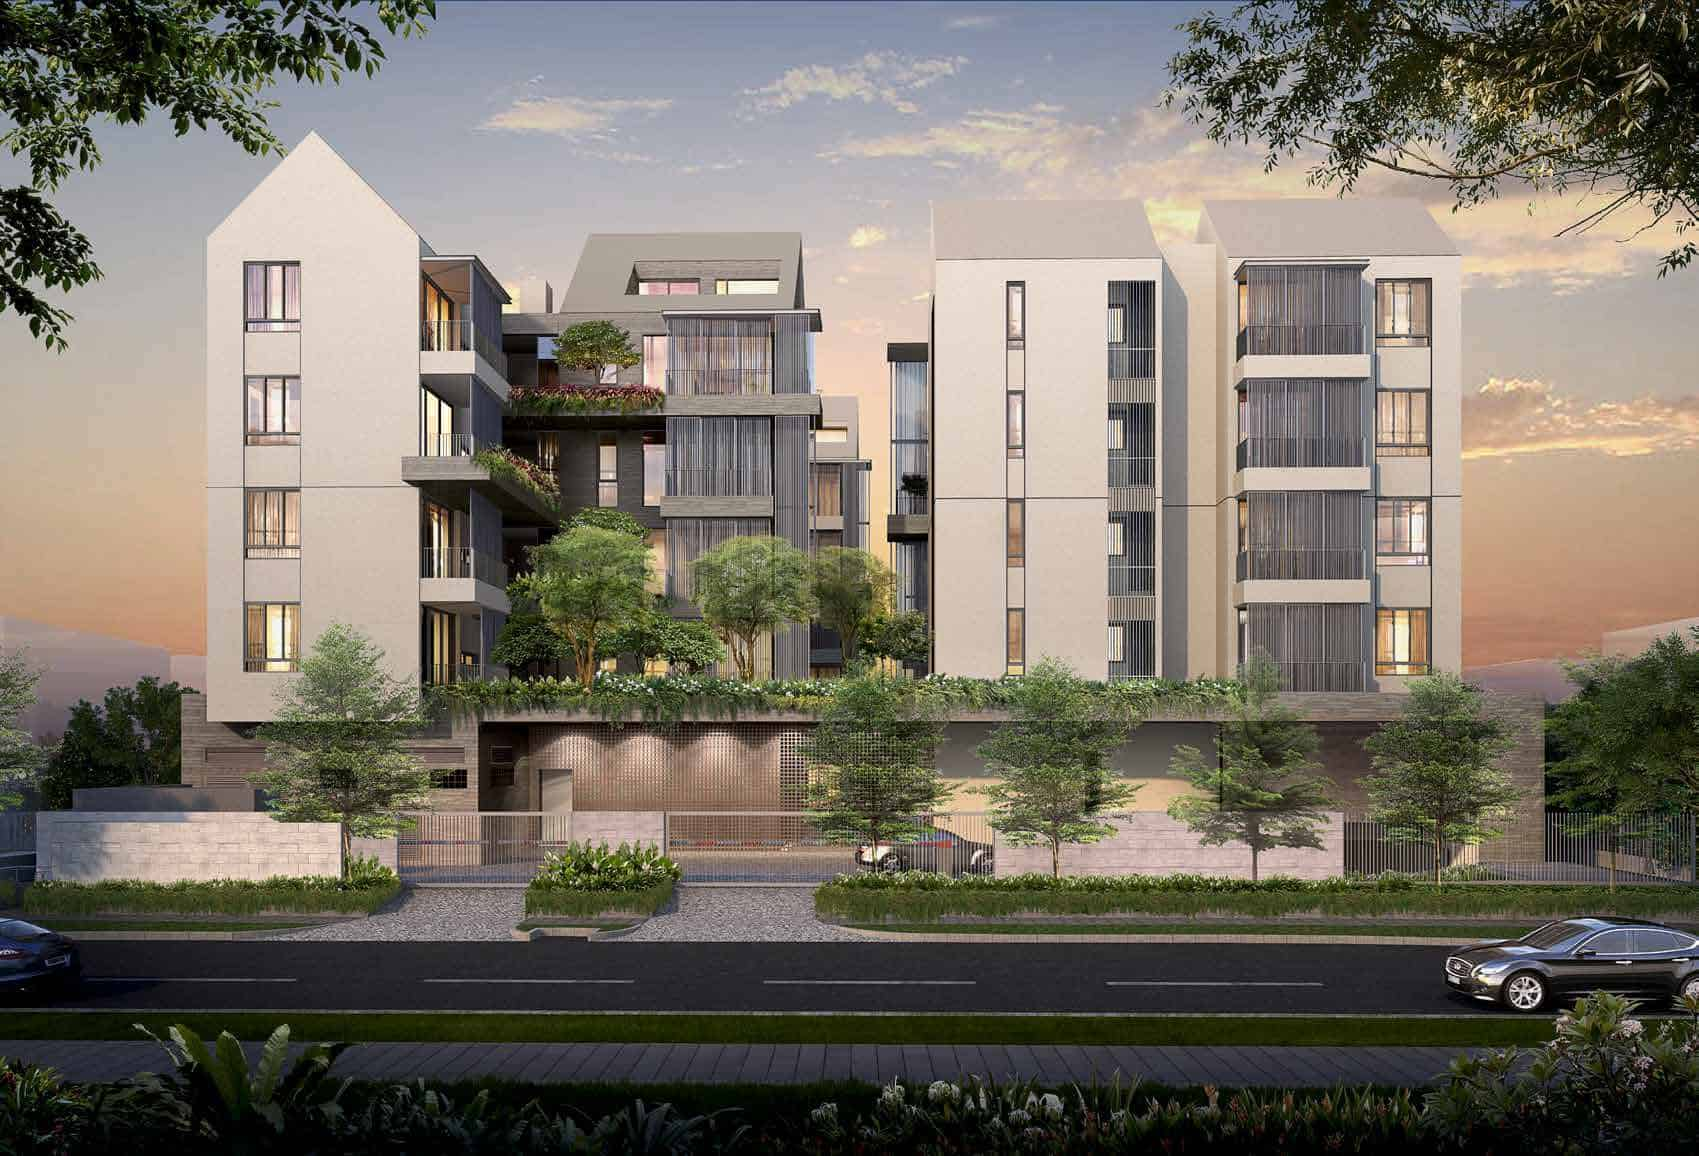 10 Evelyn - 10 Evelyn is a 56 unit residential development